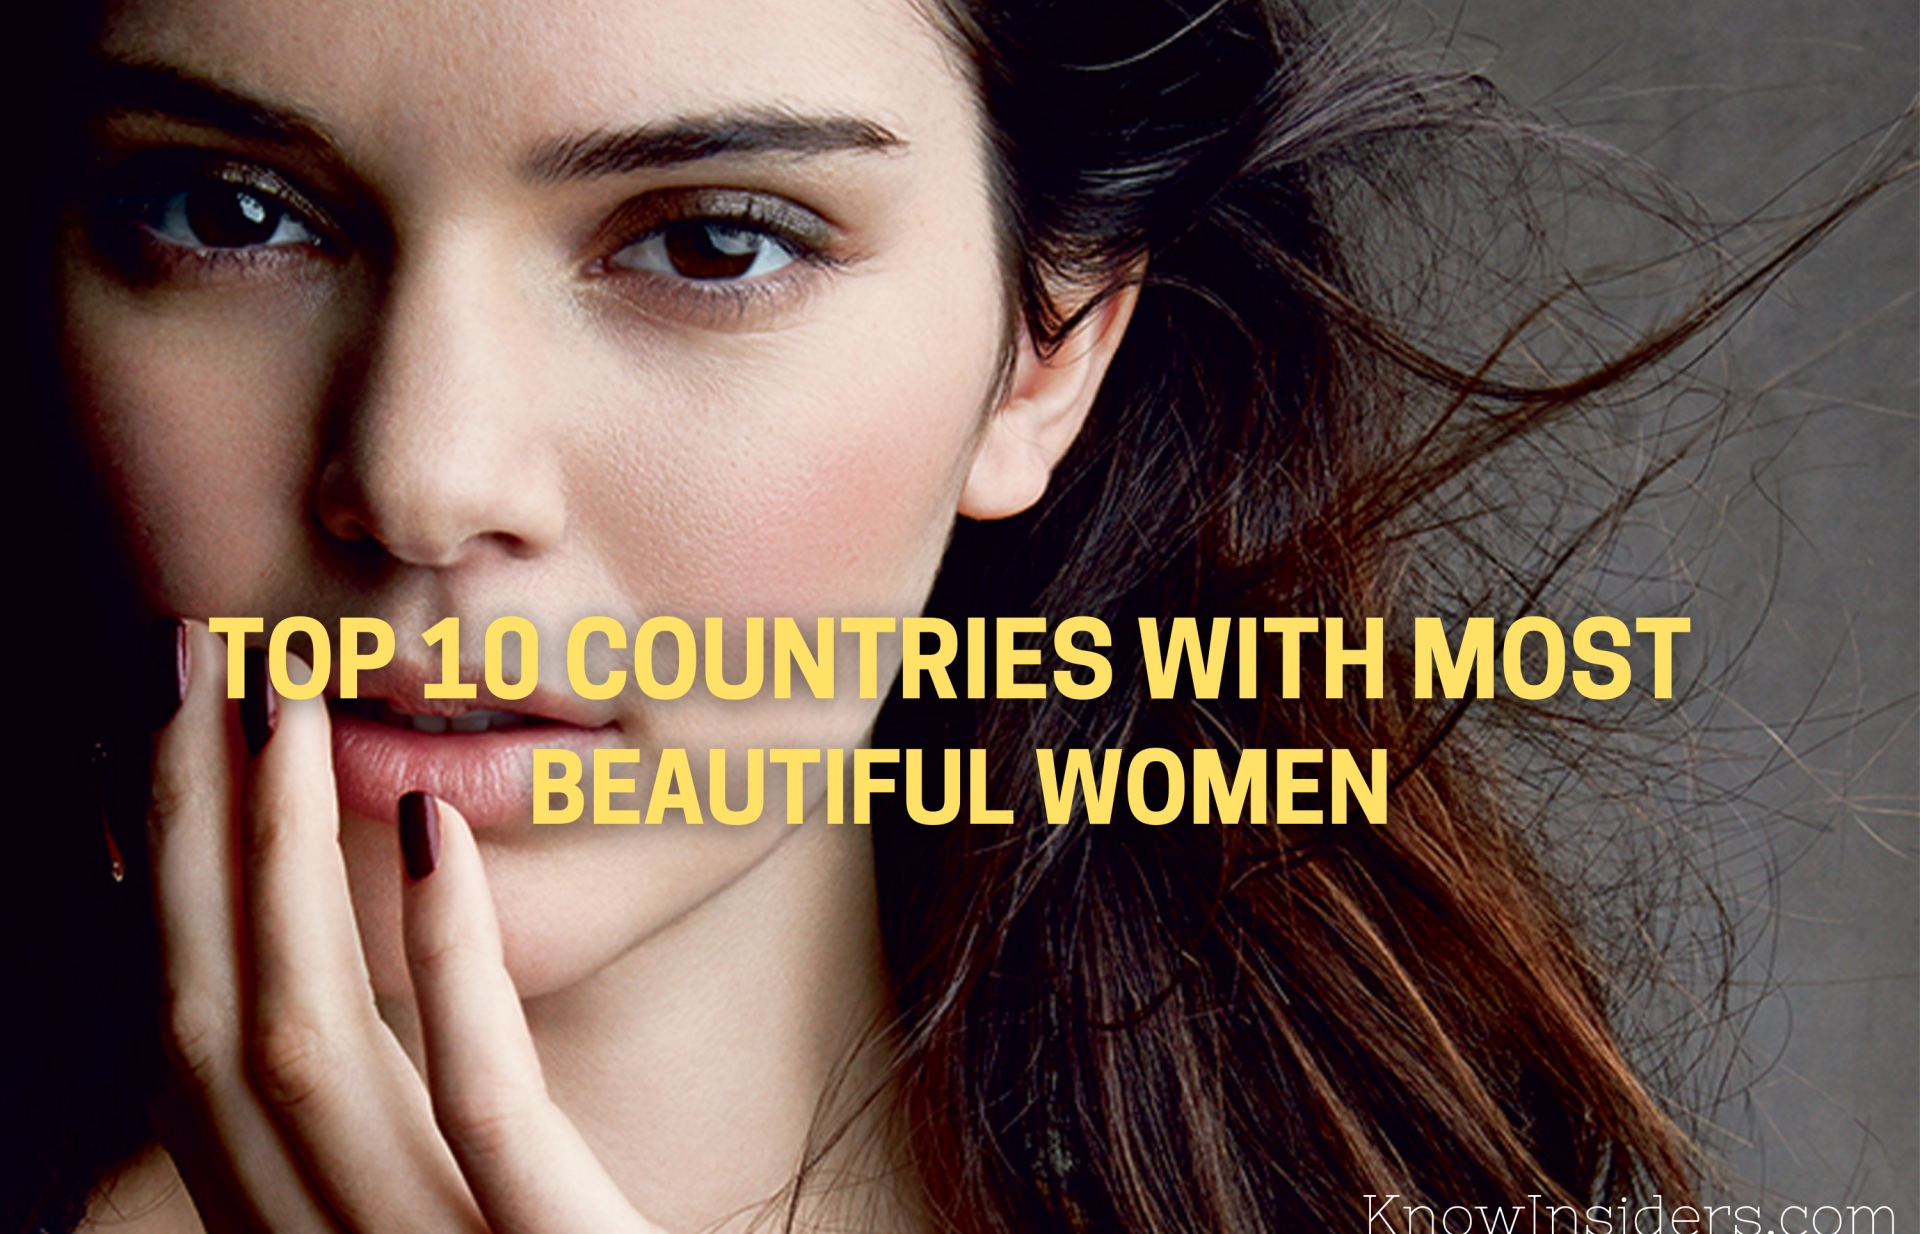 Top 10 Countries Having Most Beautiful Women in the World